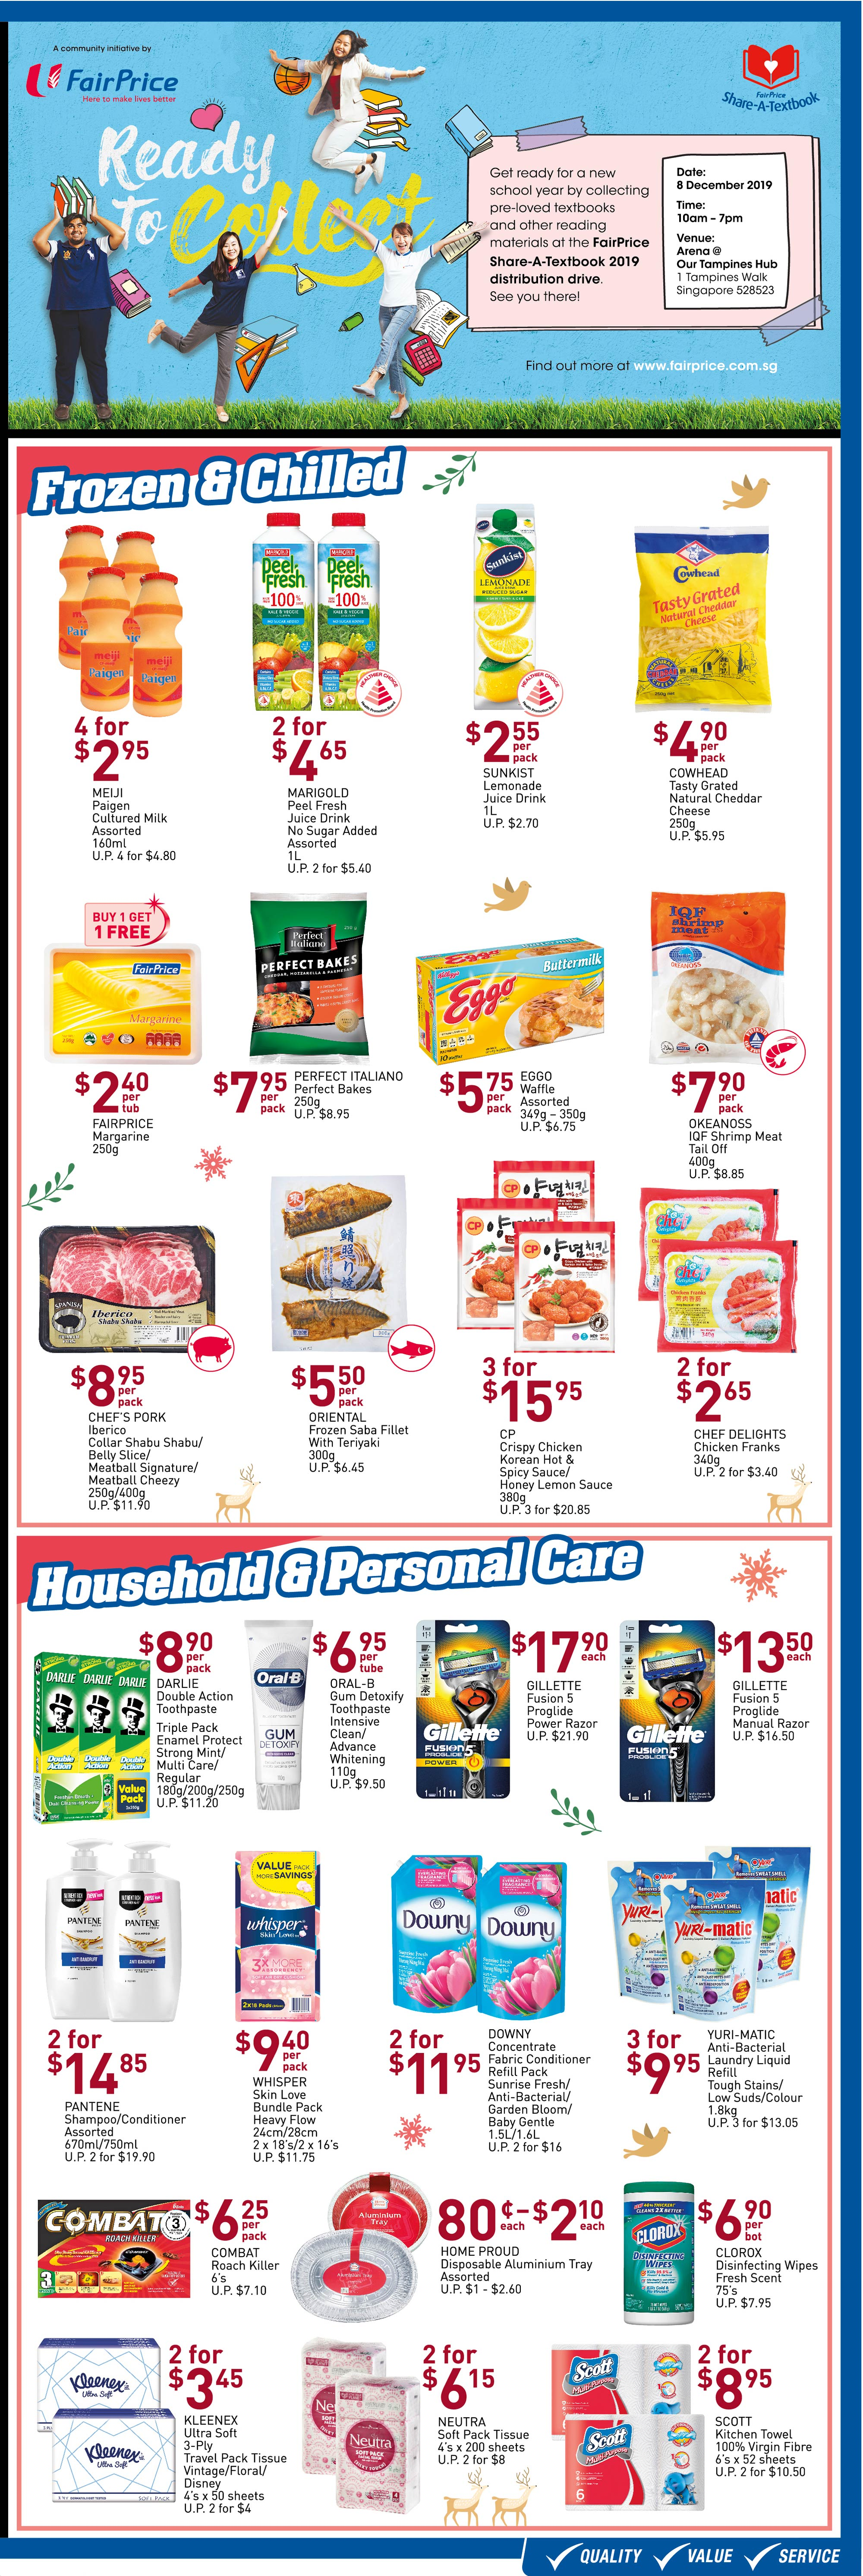 NTUC FairPrice Singapore Your Weekly Saver Promotions 28 Nov - 4 Dec 2019 | Why Not Deals 2 & Promotions